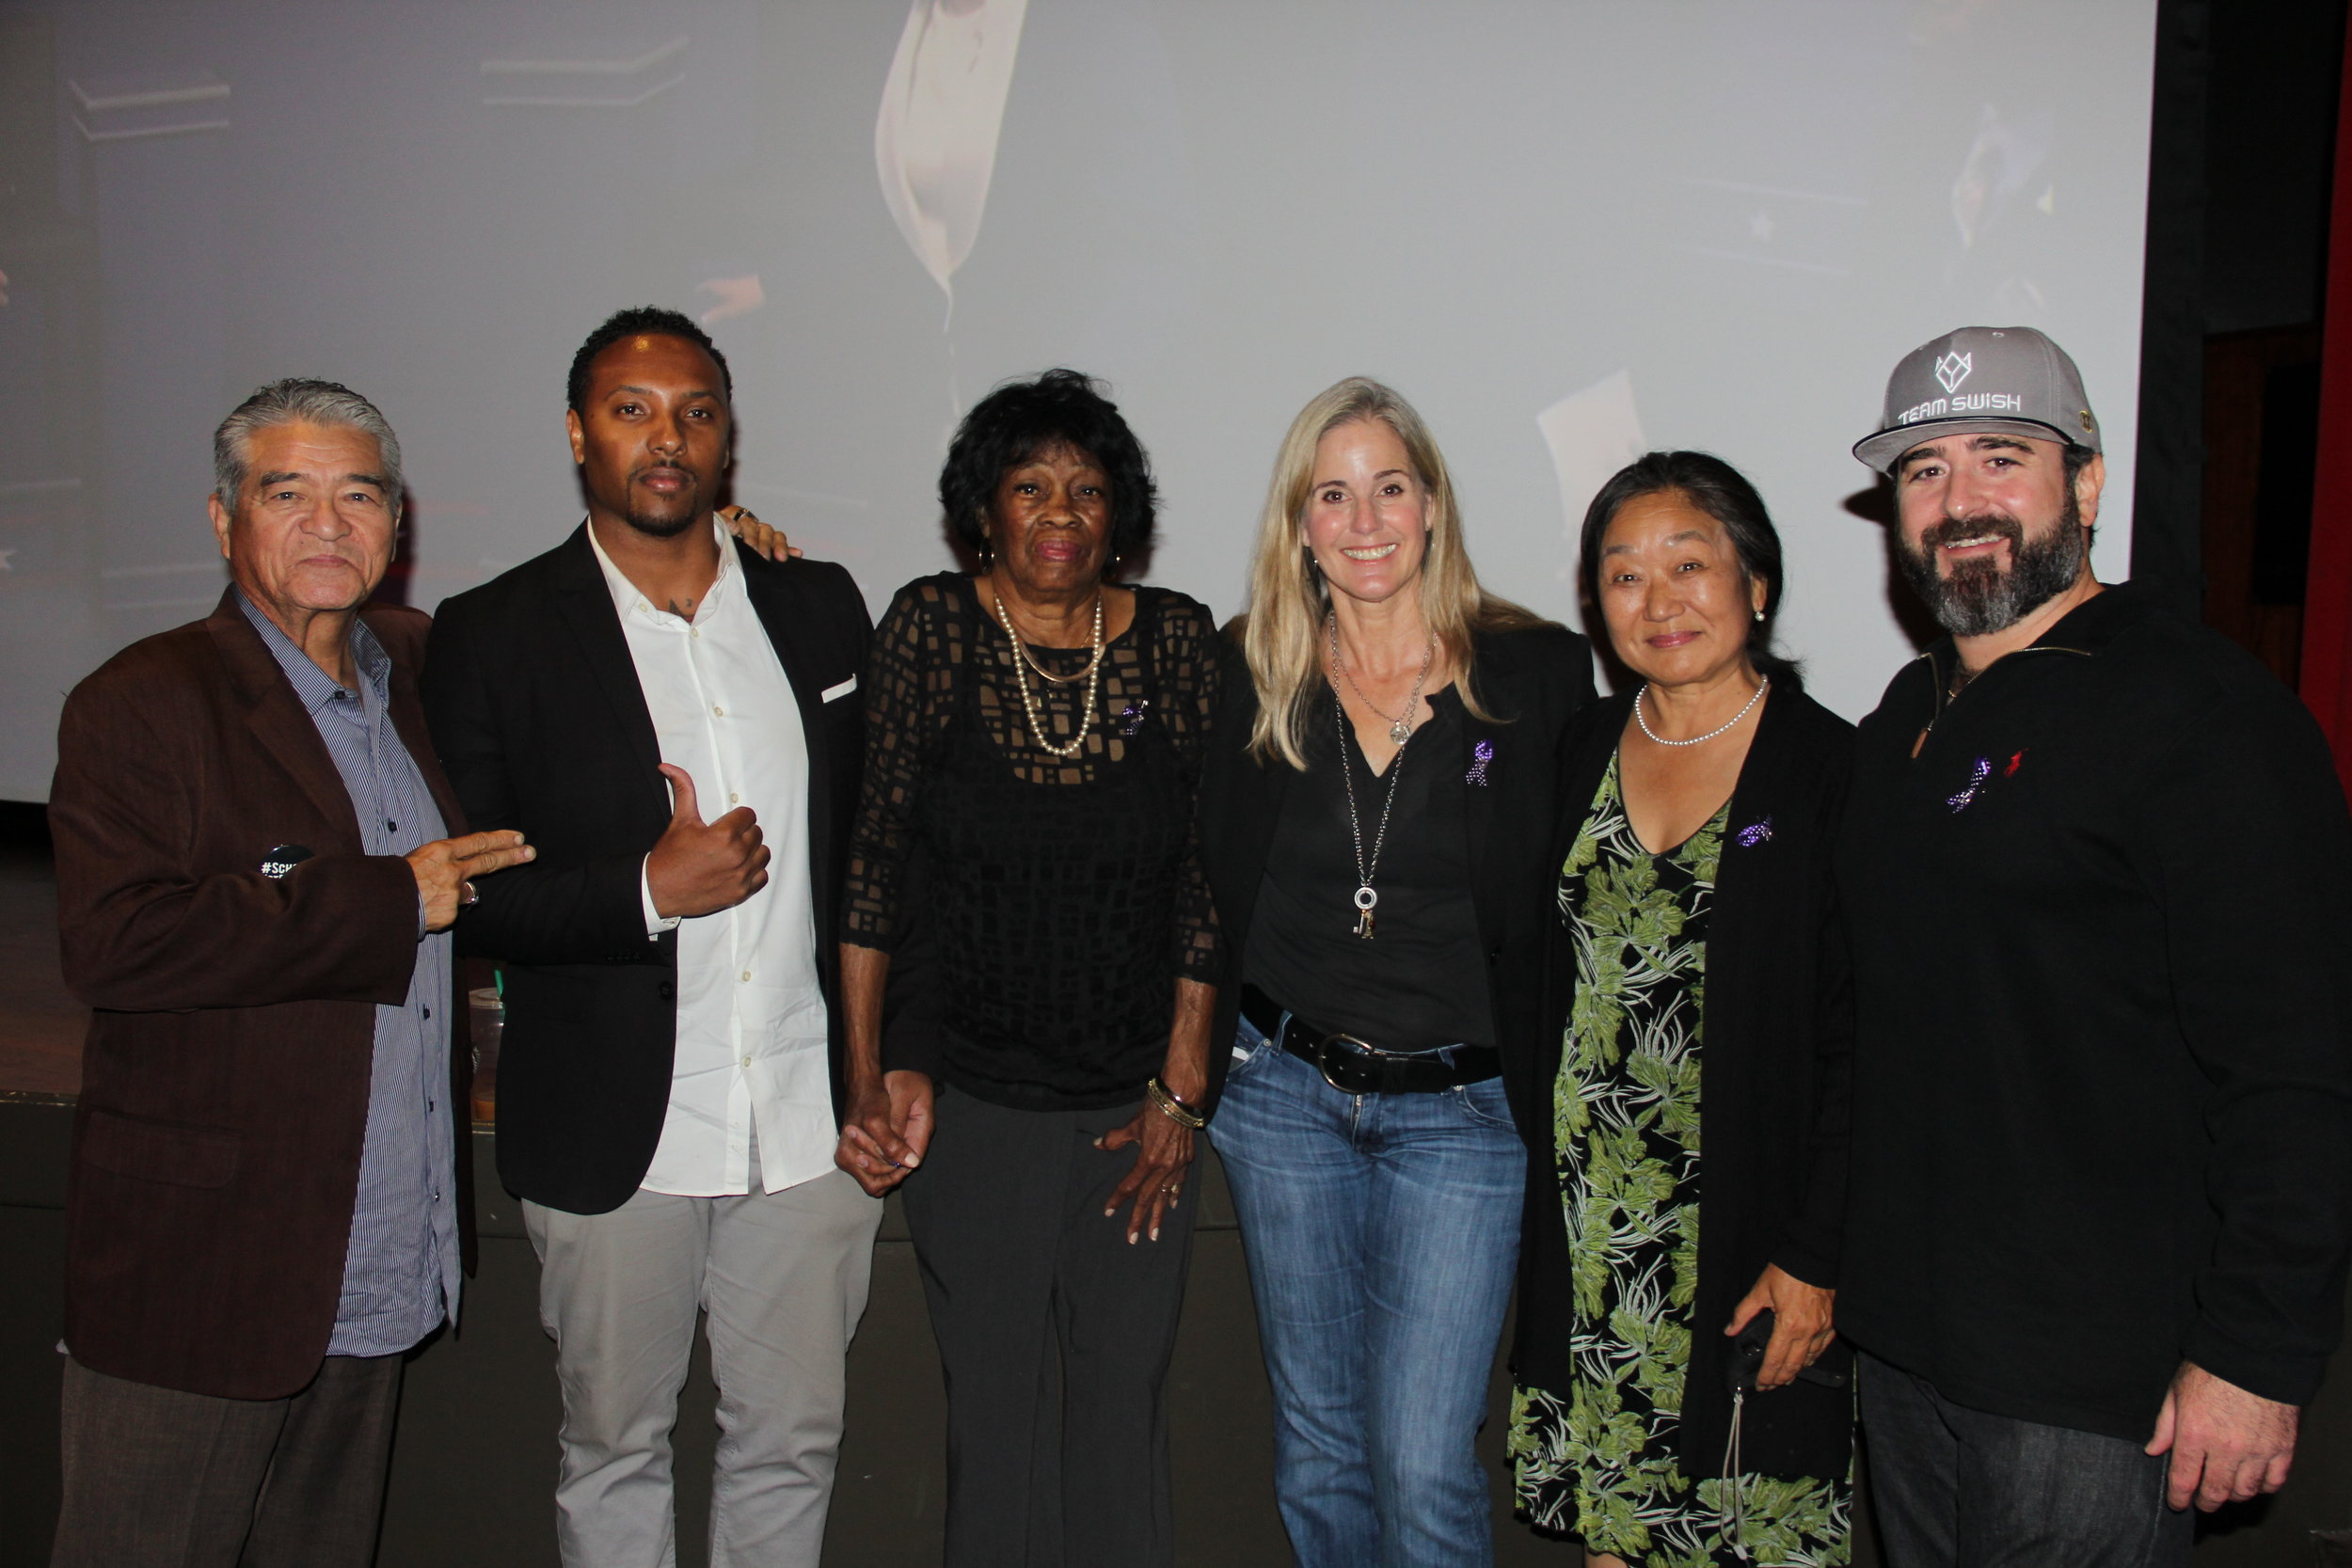 """From left: Josof """"Jojo"""" Sanchez, Kevin Maxwell, Cora Maxwell, Pam Rayburn, Julie Matsumoto and David Field.  Photo courtesy of the Department of Women's Gender and Sexuality Studies."""